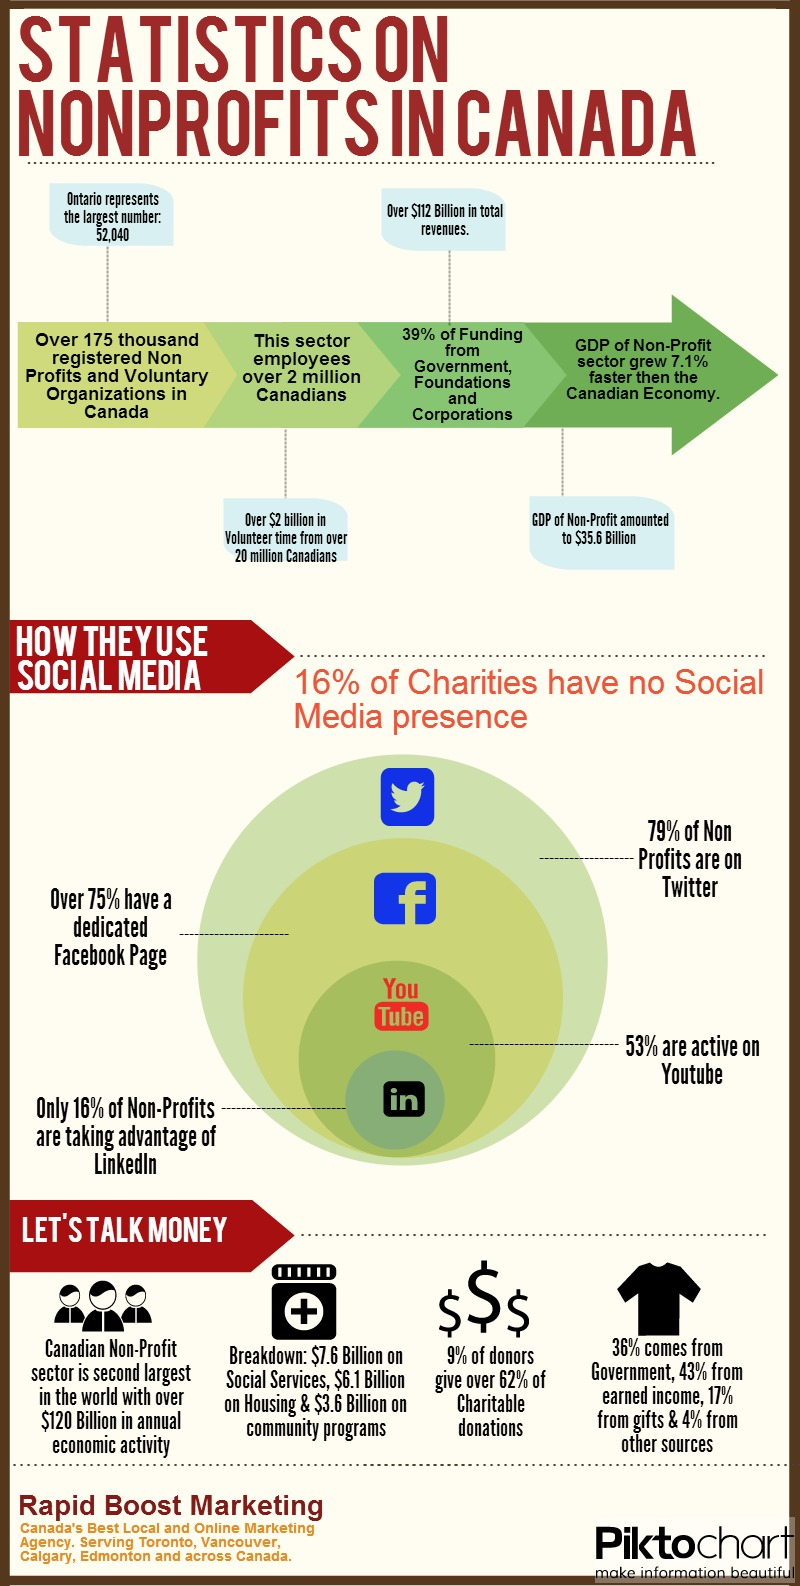 NonProfits in Canada Infographic 2013